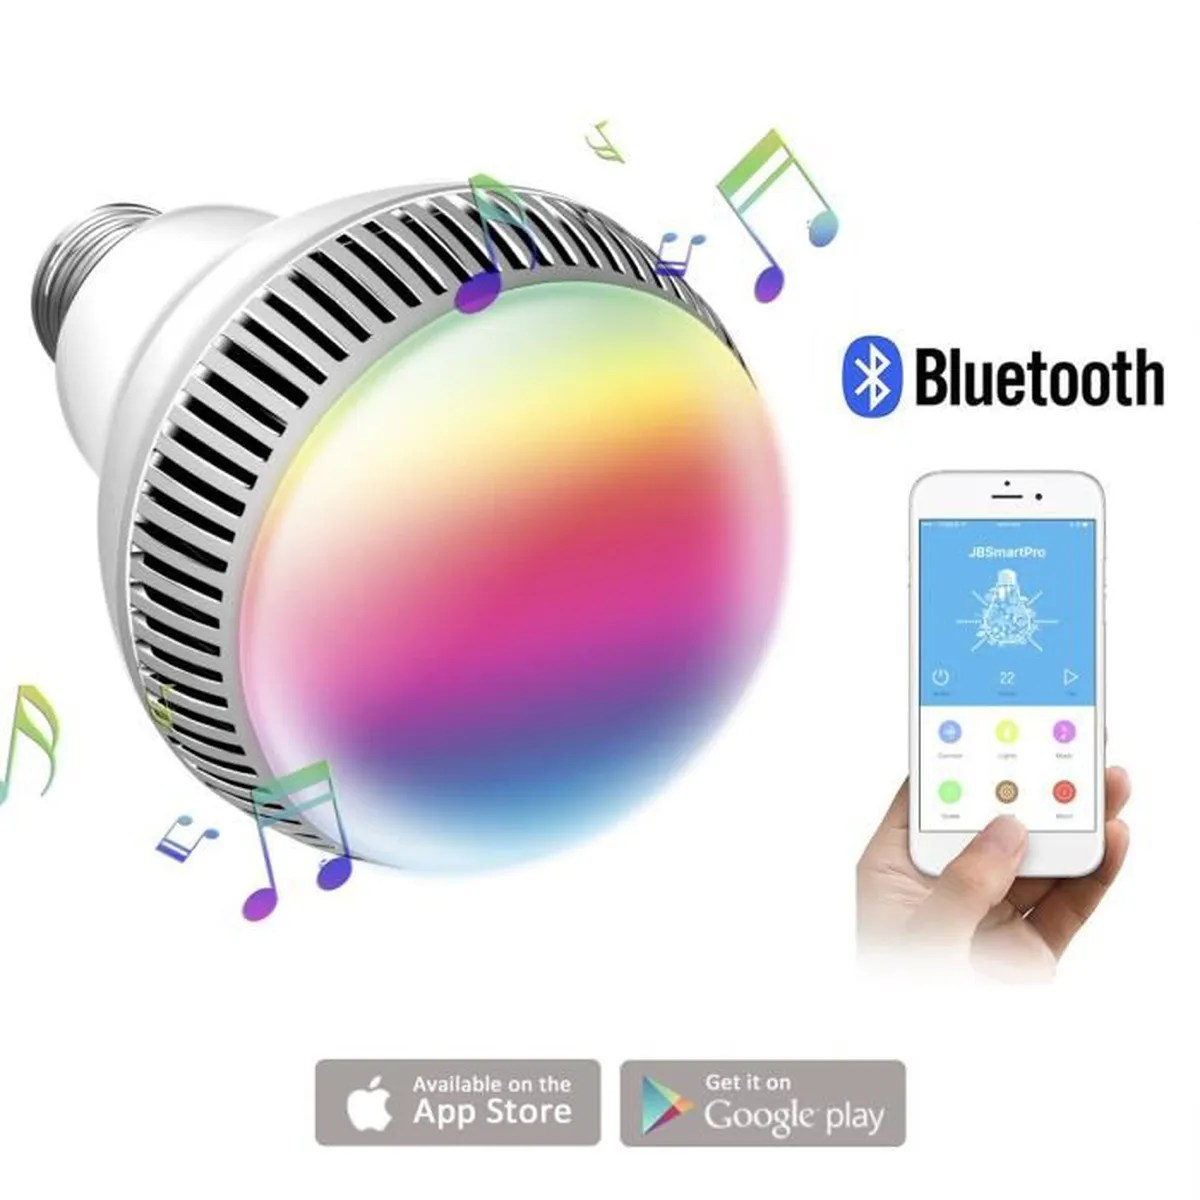 Ampoule Couleur Ampoule Connectée Morpilot Ampoule Bluetooth Encenite